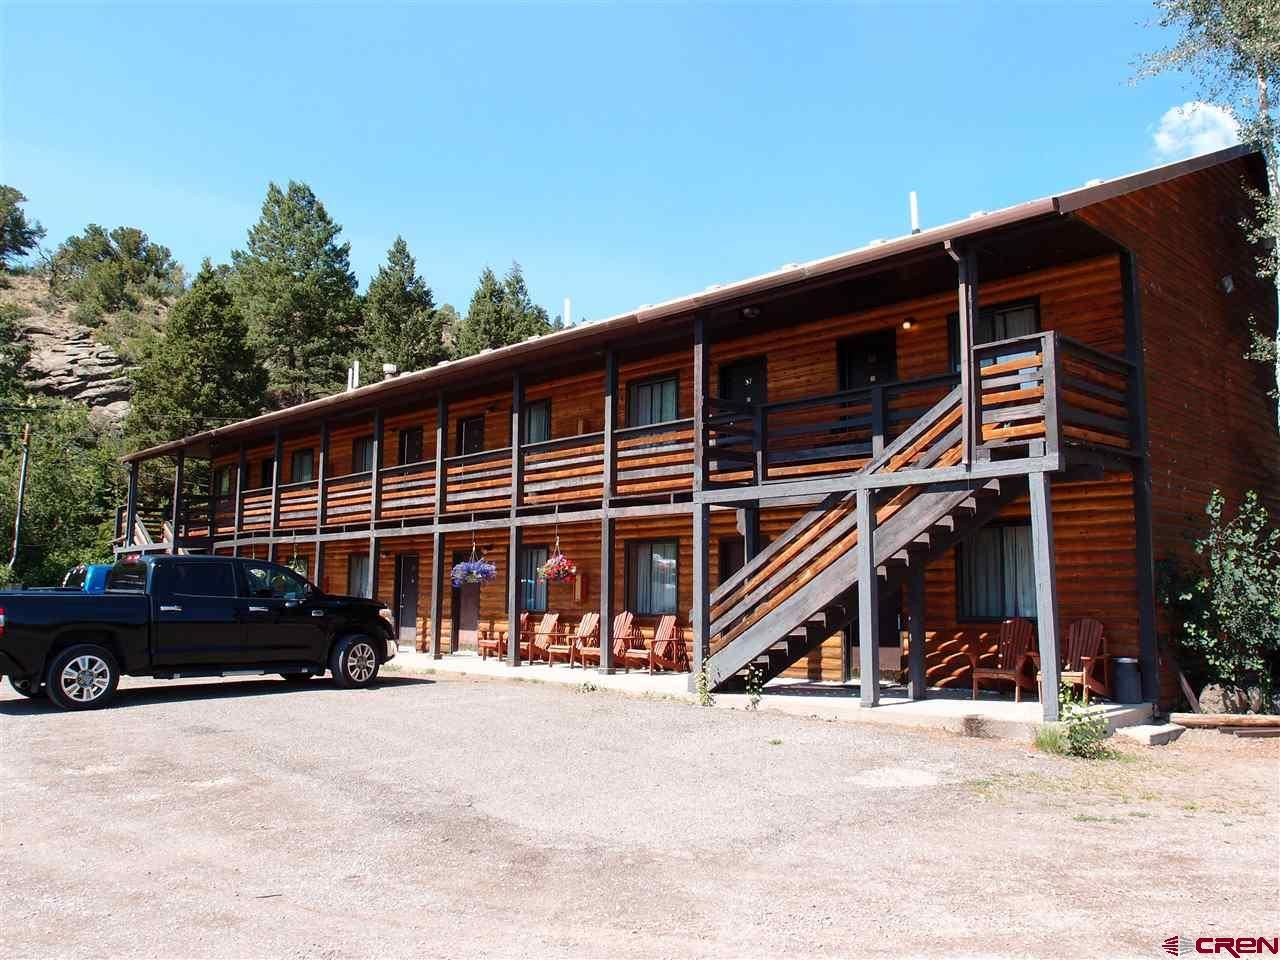 Photo of 27680 Hwy 160, South Fork, CO 81154 (MLS # 766985)